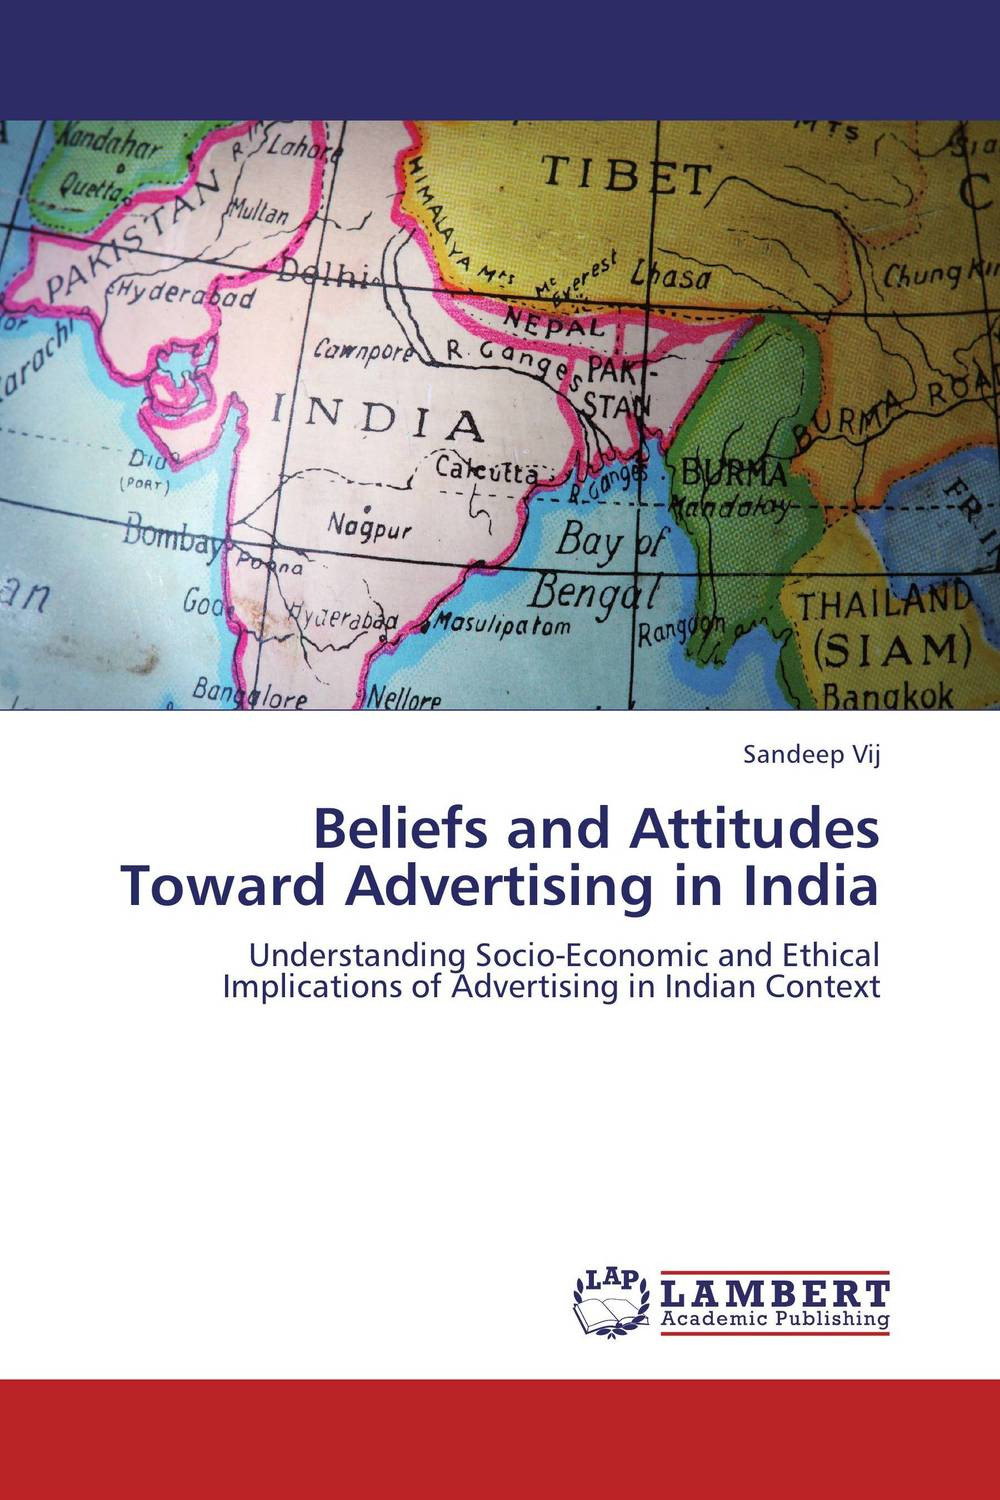 Beliefs and Attitudes Toward Advertising in India merc merc me001emfol02